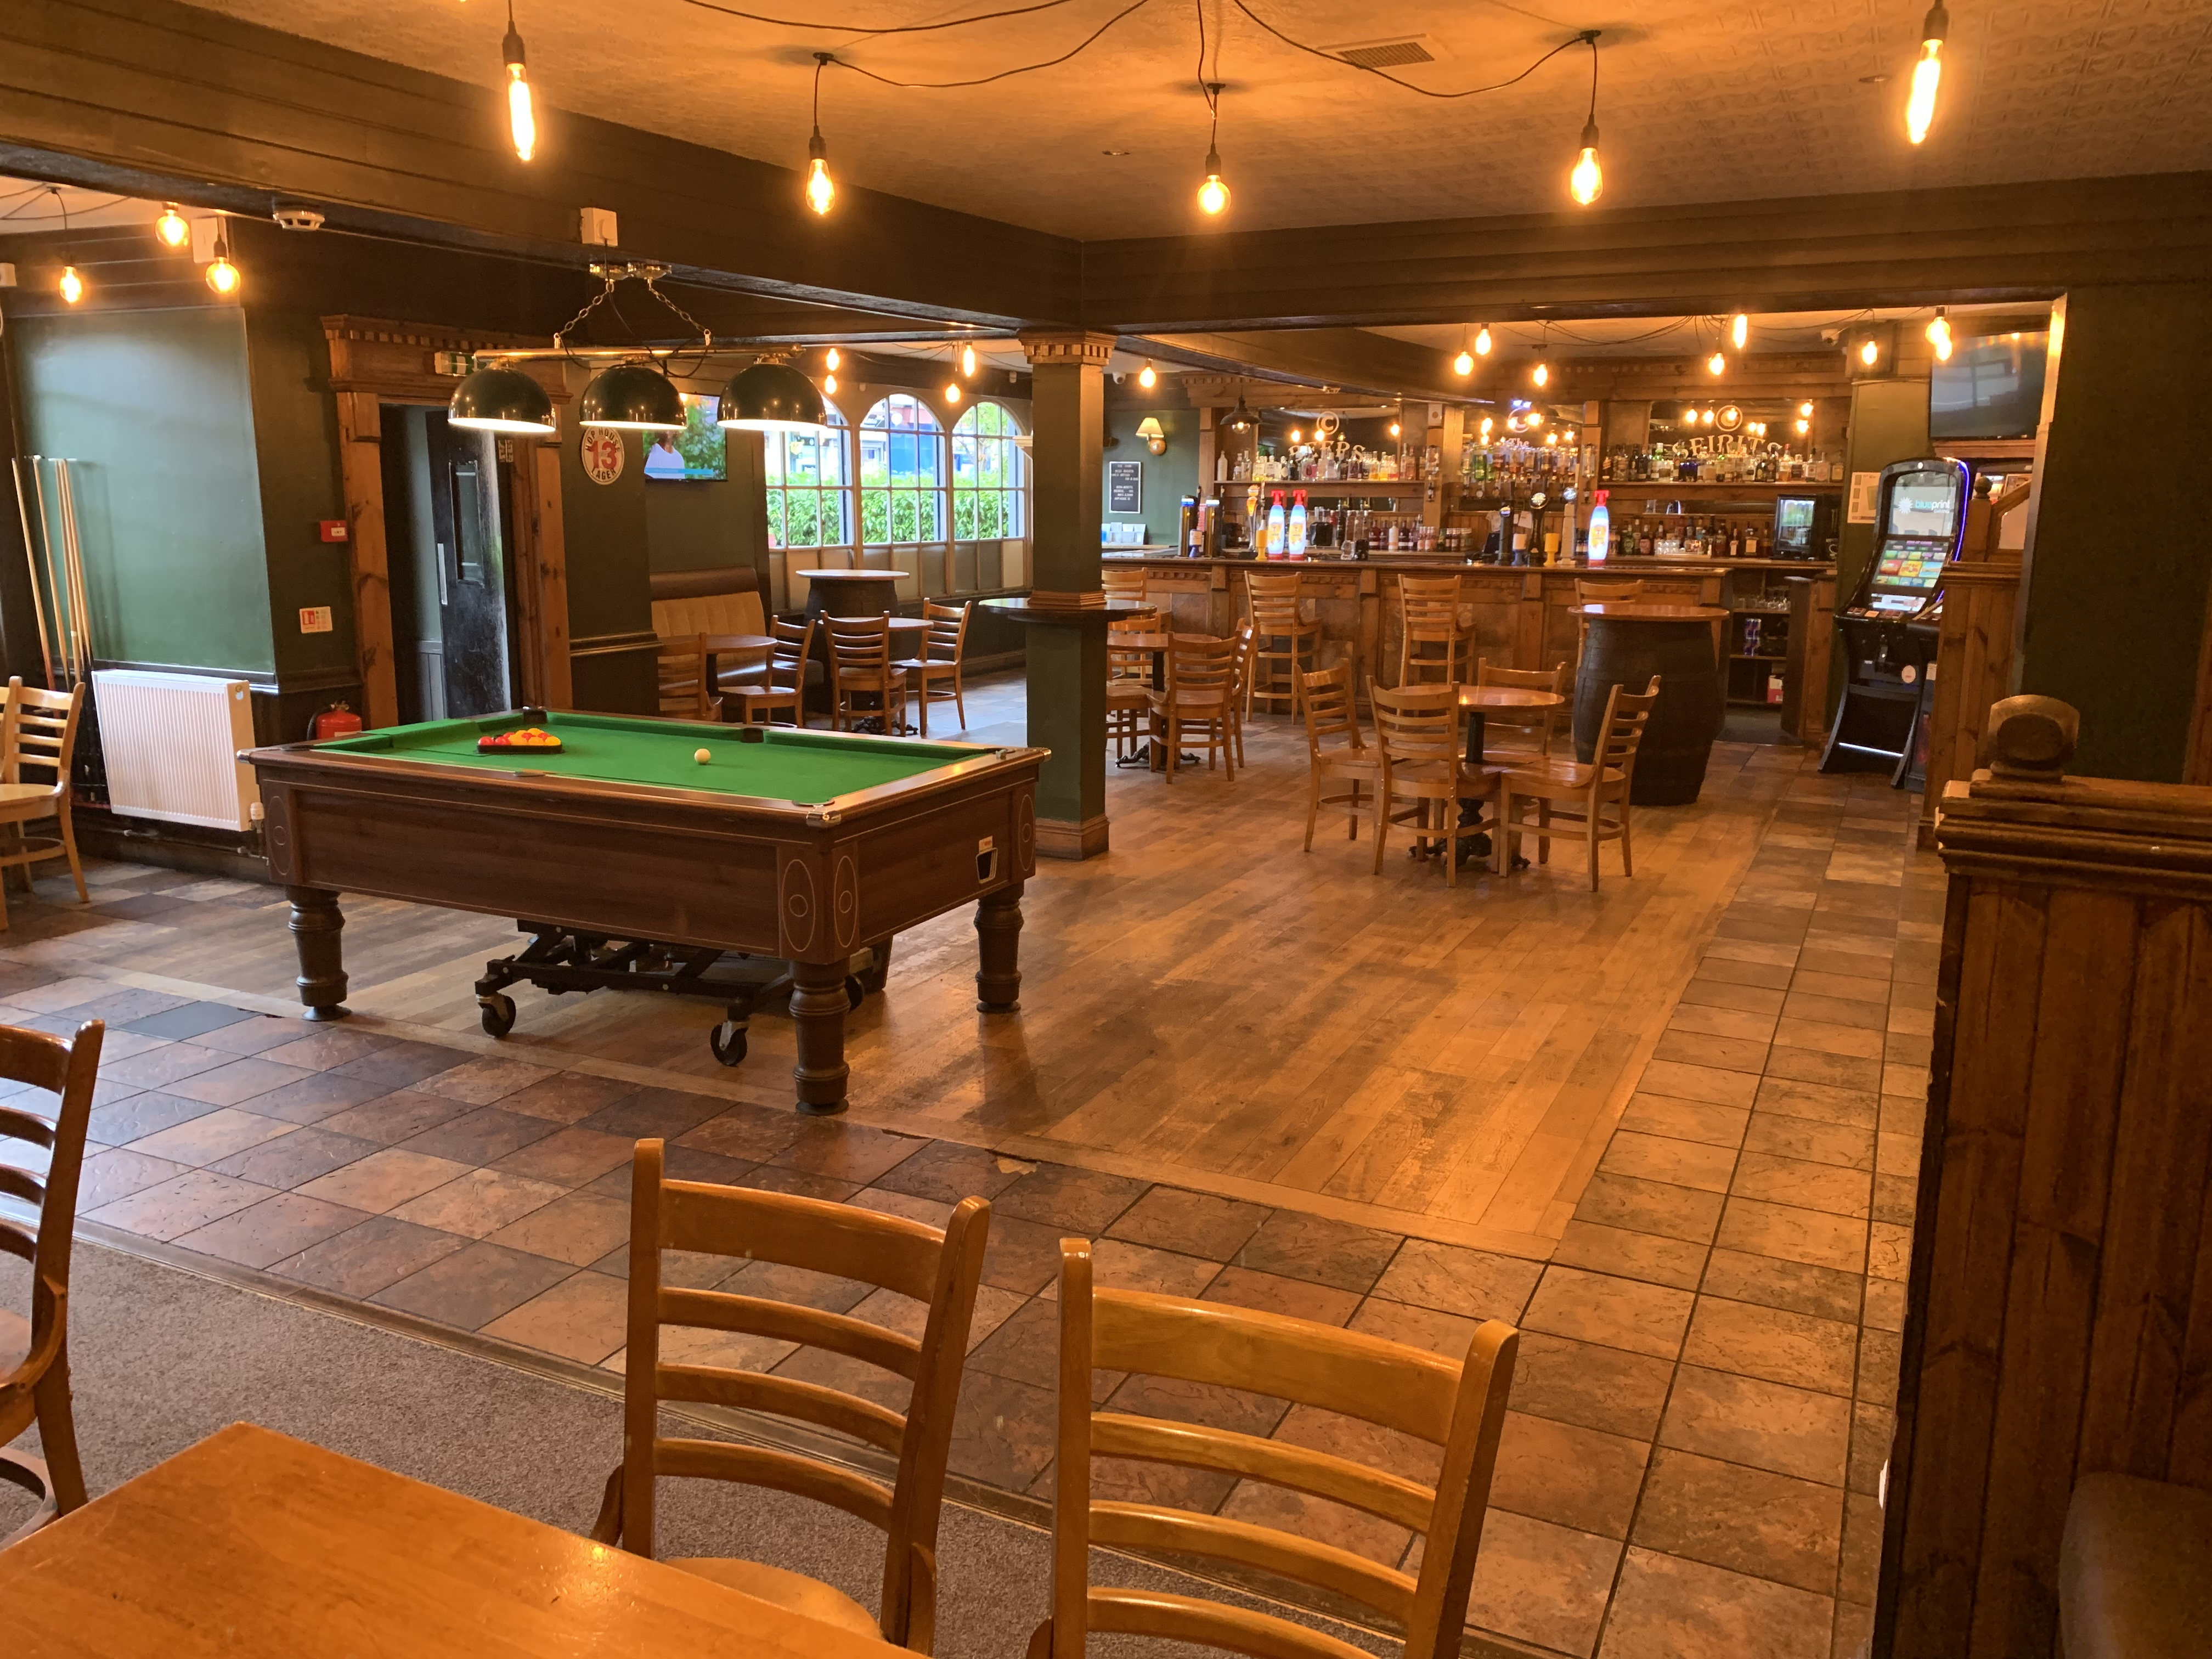 Have a Pint with a game of pool